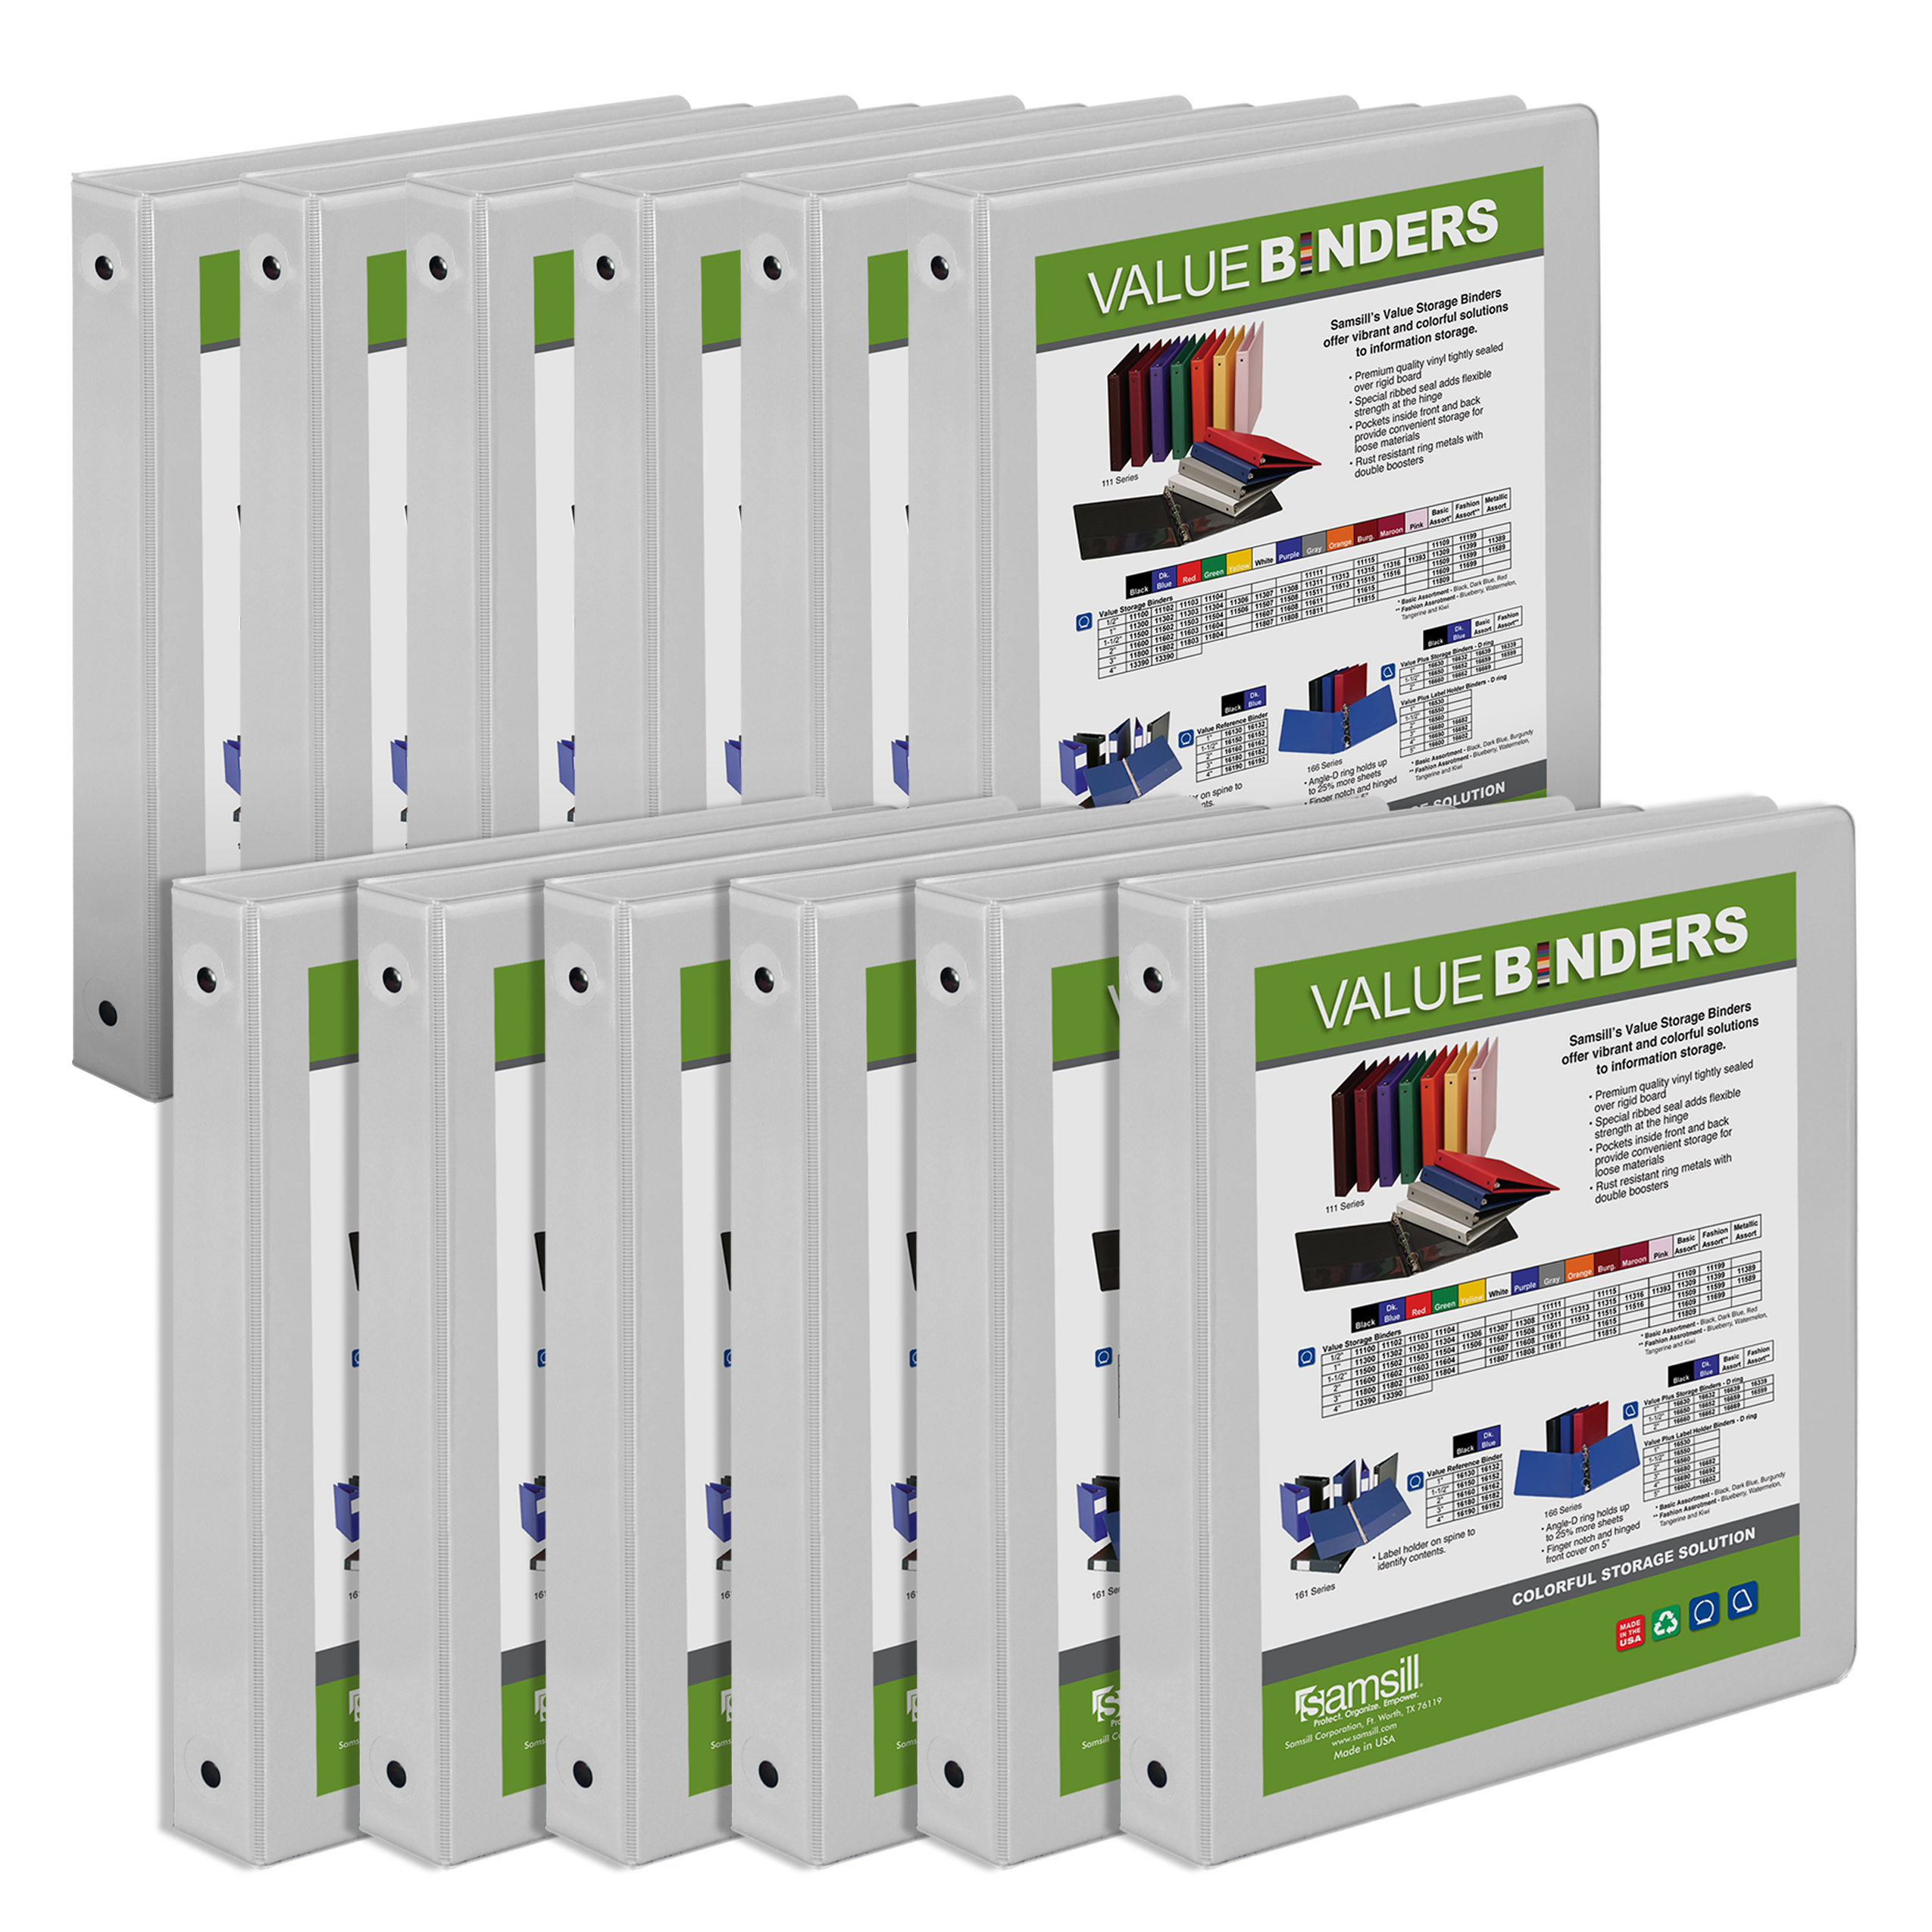 """Samsill Economy 1"""" Round Ring View Binders, White, 12 Pack by SAMSILL CORPORATION"""